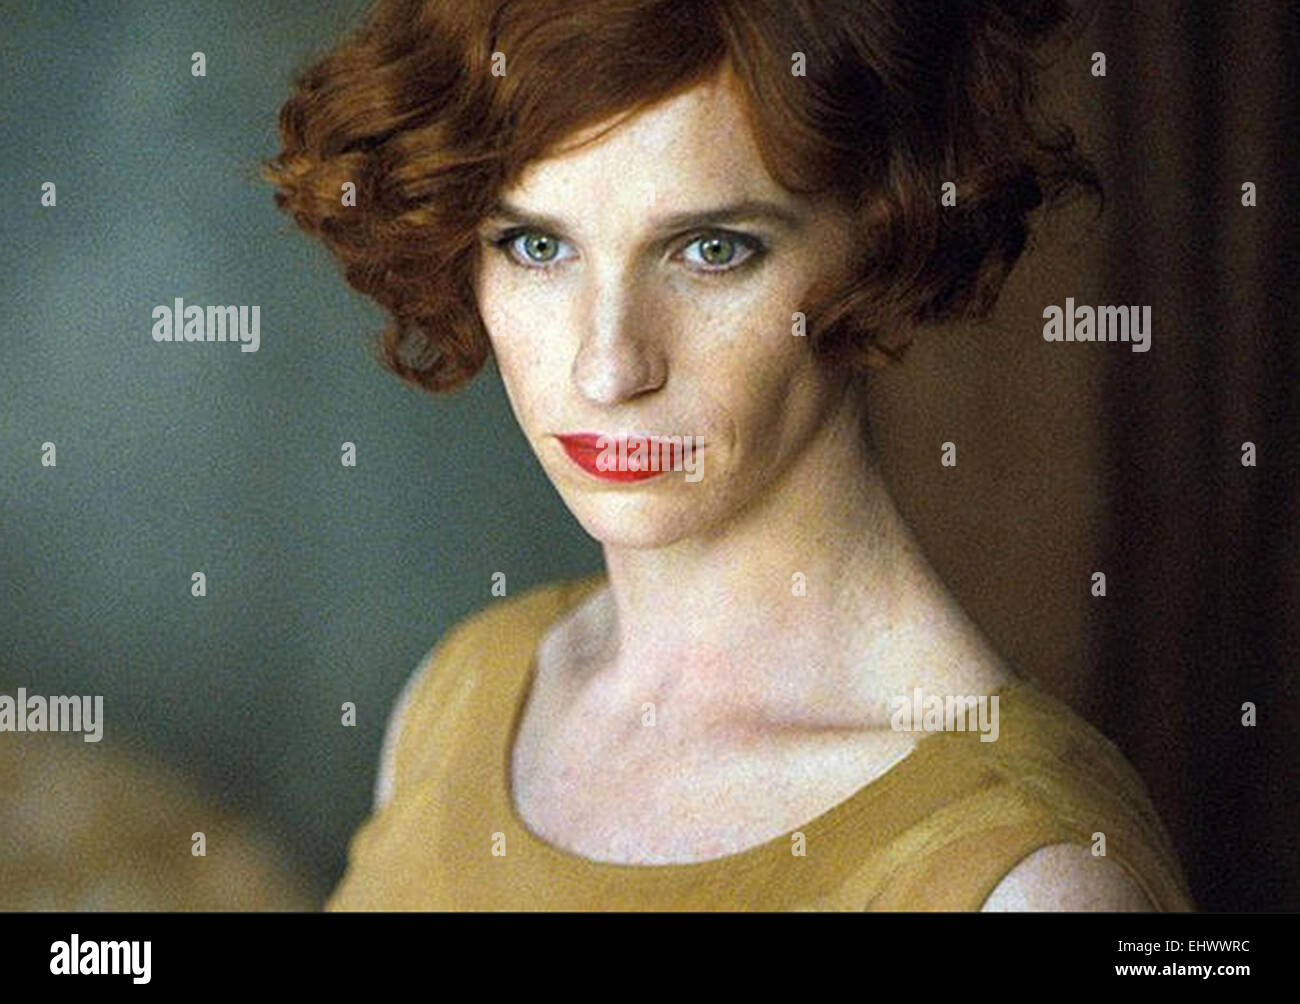 THE DANISH GIRL 2015 Pretty Pictures film with Eddie Redmayne as Lili Elbe - Stock Image